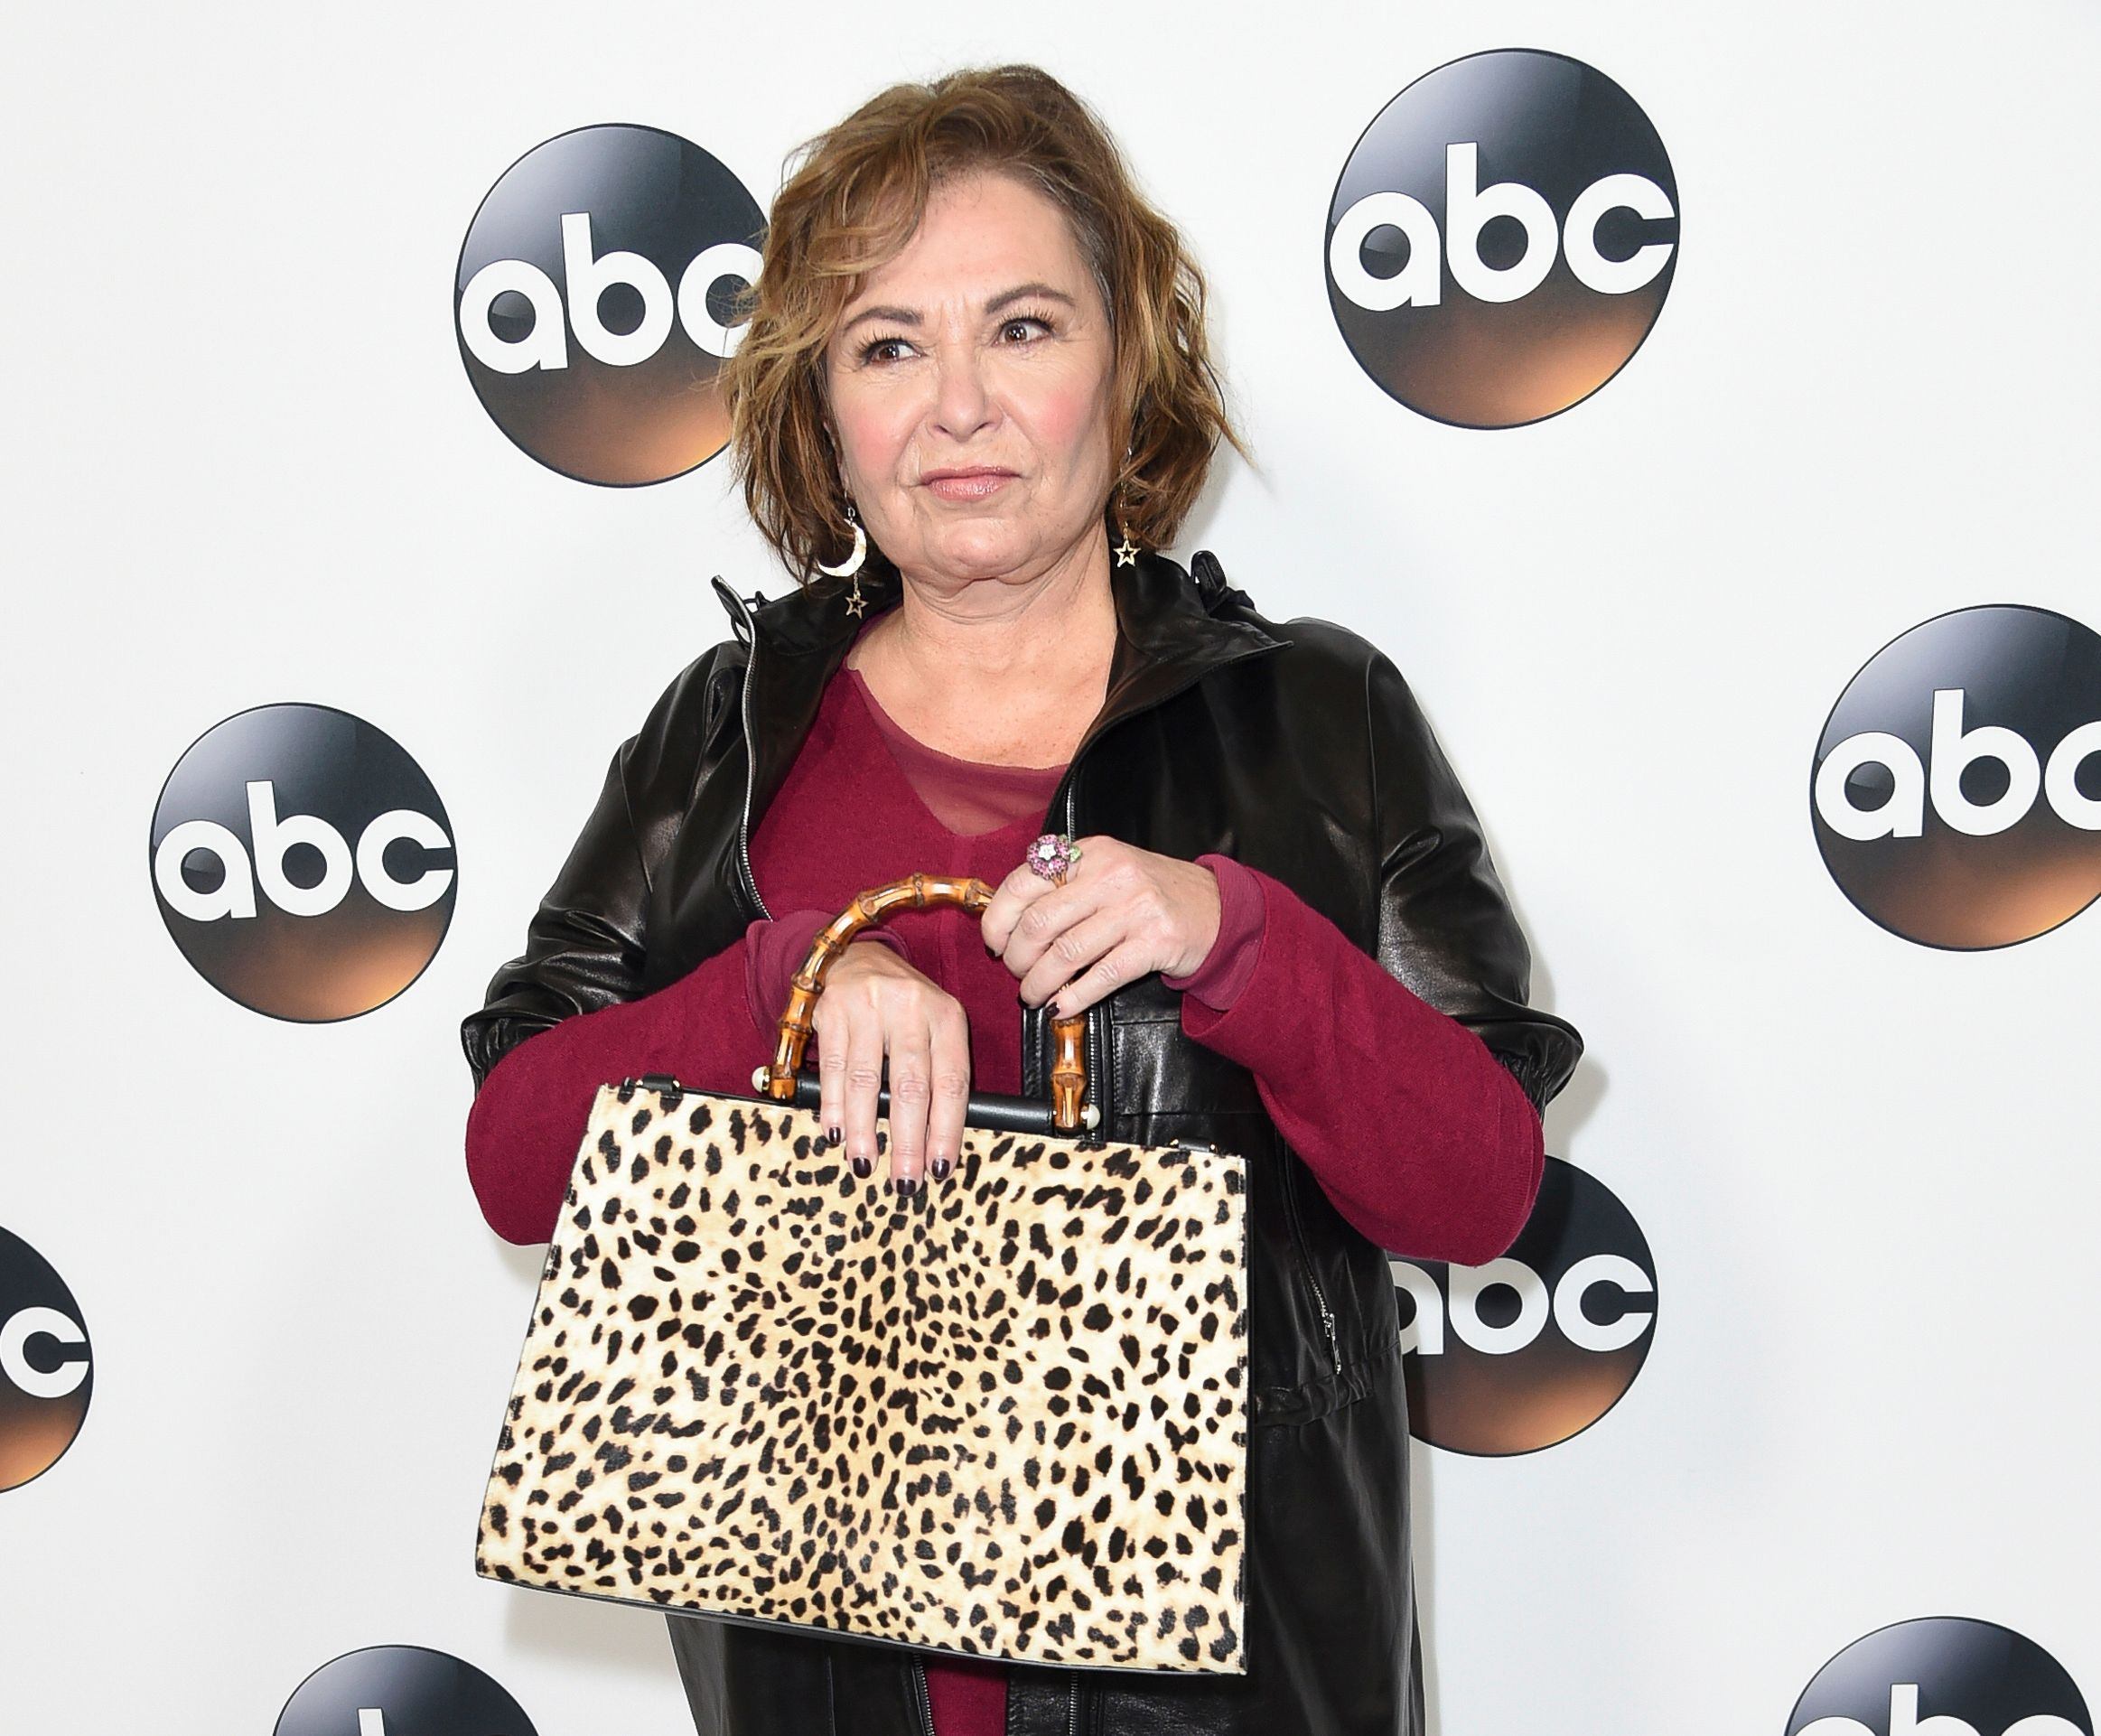 Roseanne posing in front of an ABC backdrop